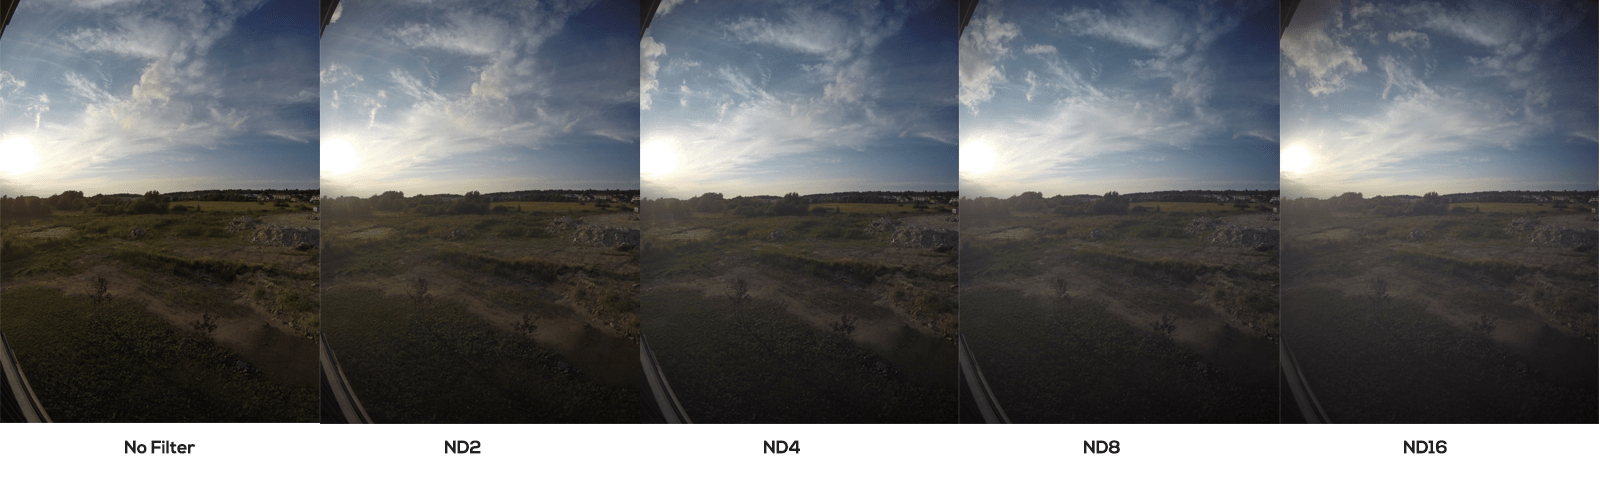 CamKix Cinematic Filter Pack sidebyside comparison